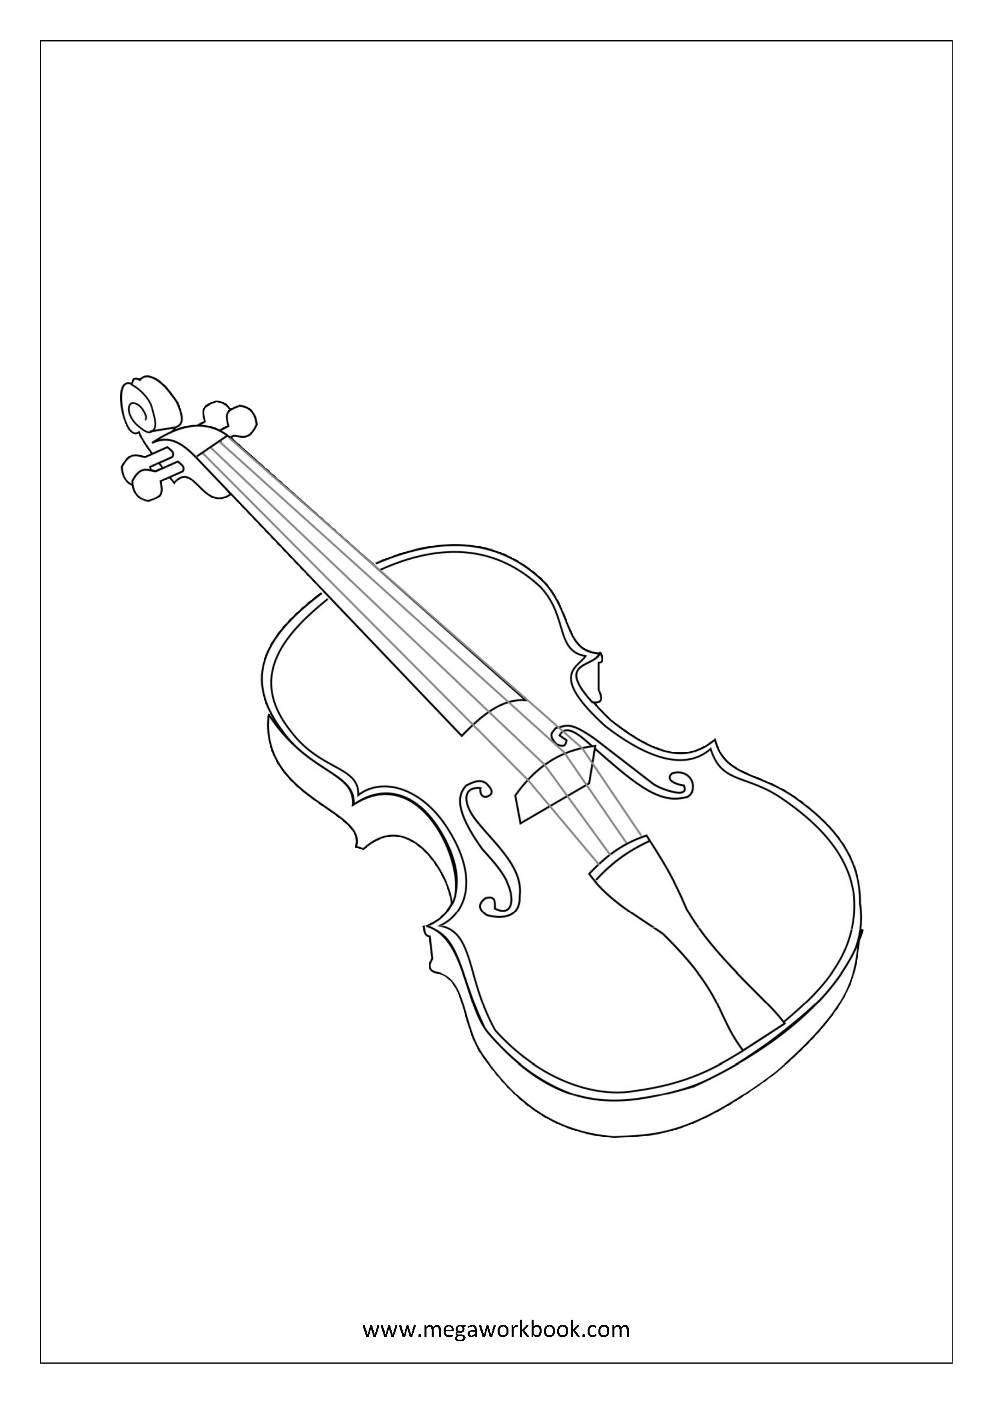 free printable coloring pages of musical instruments musical instruments coloring pages at getcoloringscom printable musical coloring pages free of instruments